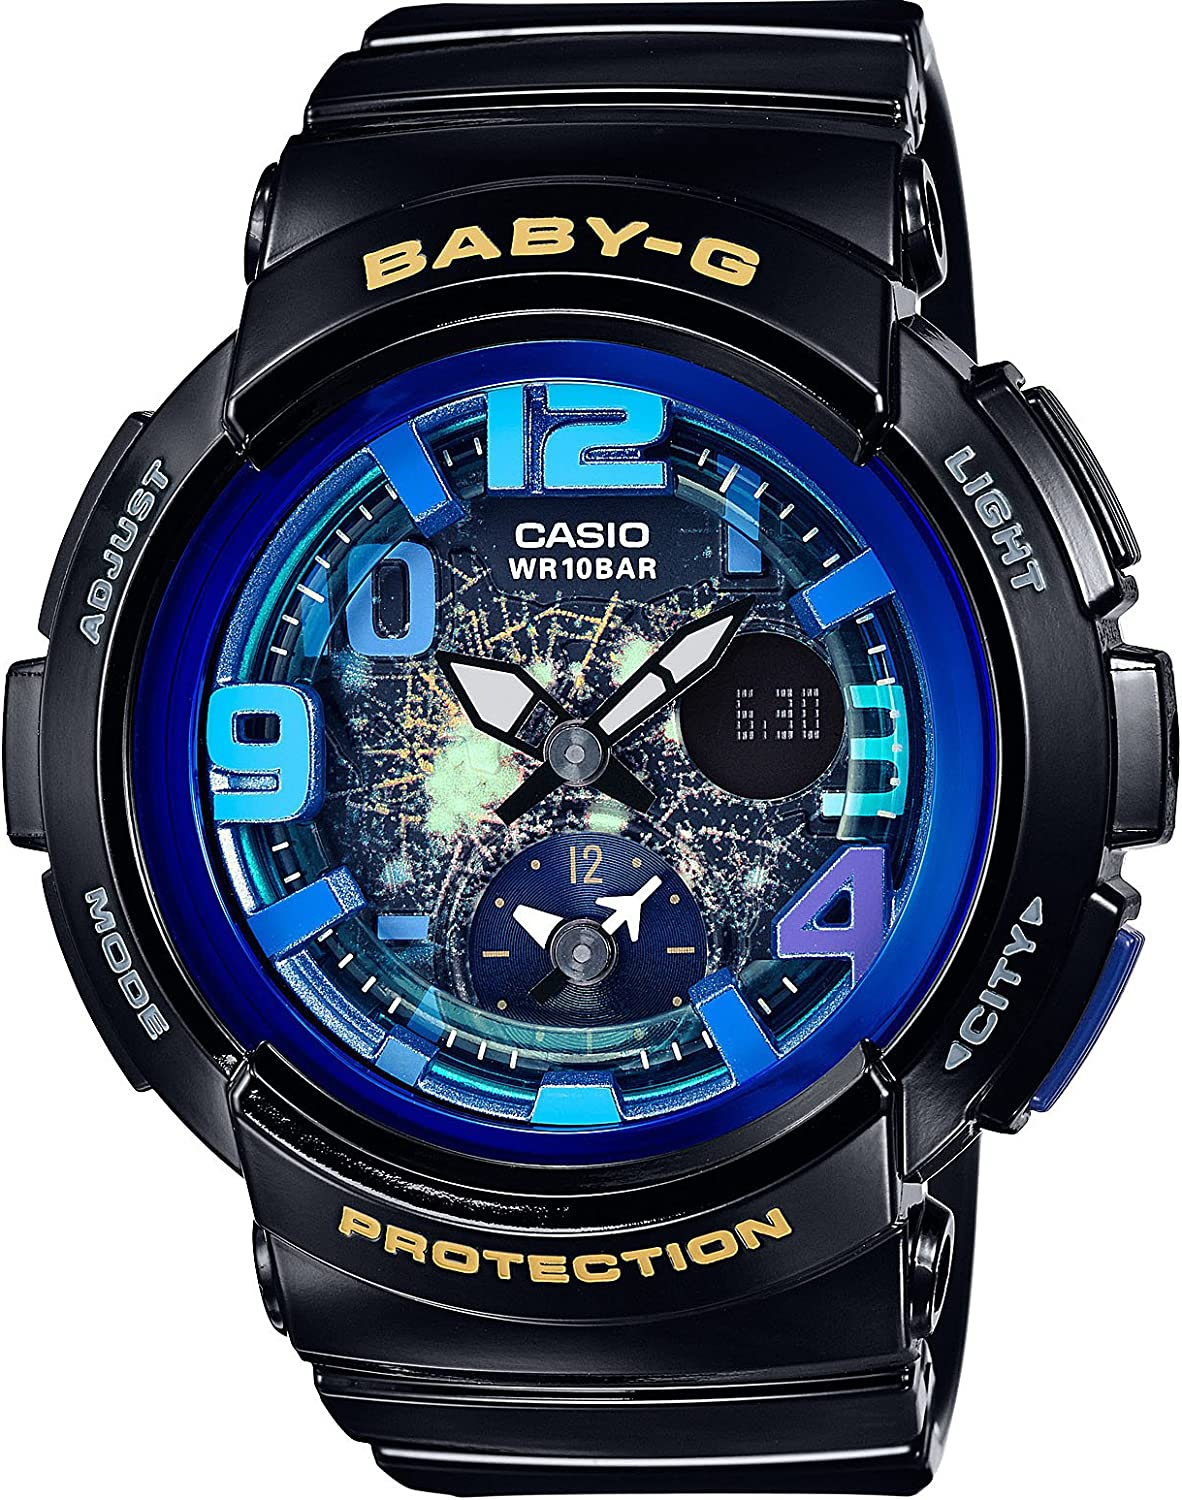 CASIO BABY-G Beach Traveler Series BGA-190GL-1BJF Women s Watch JAPAN IMPORT